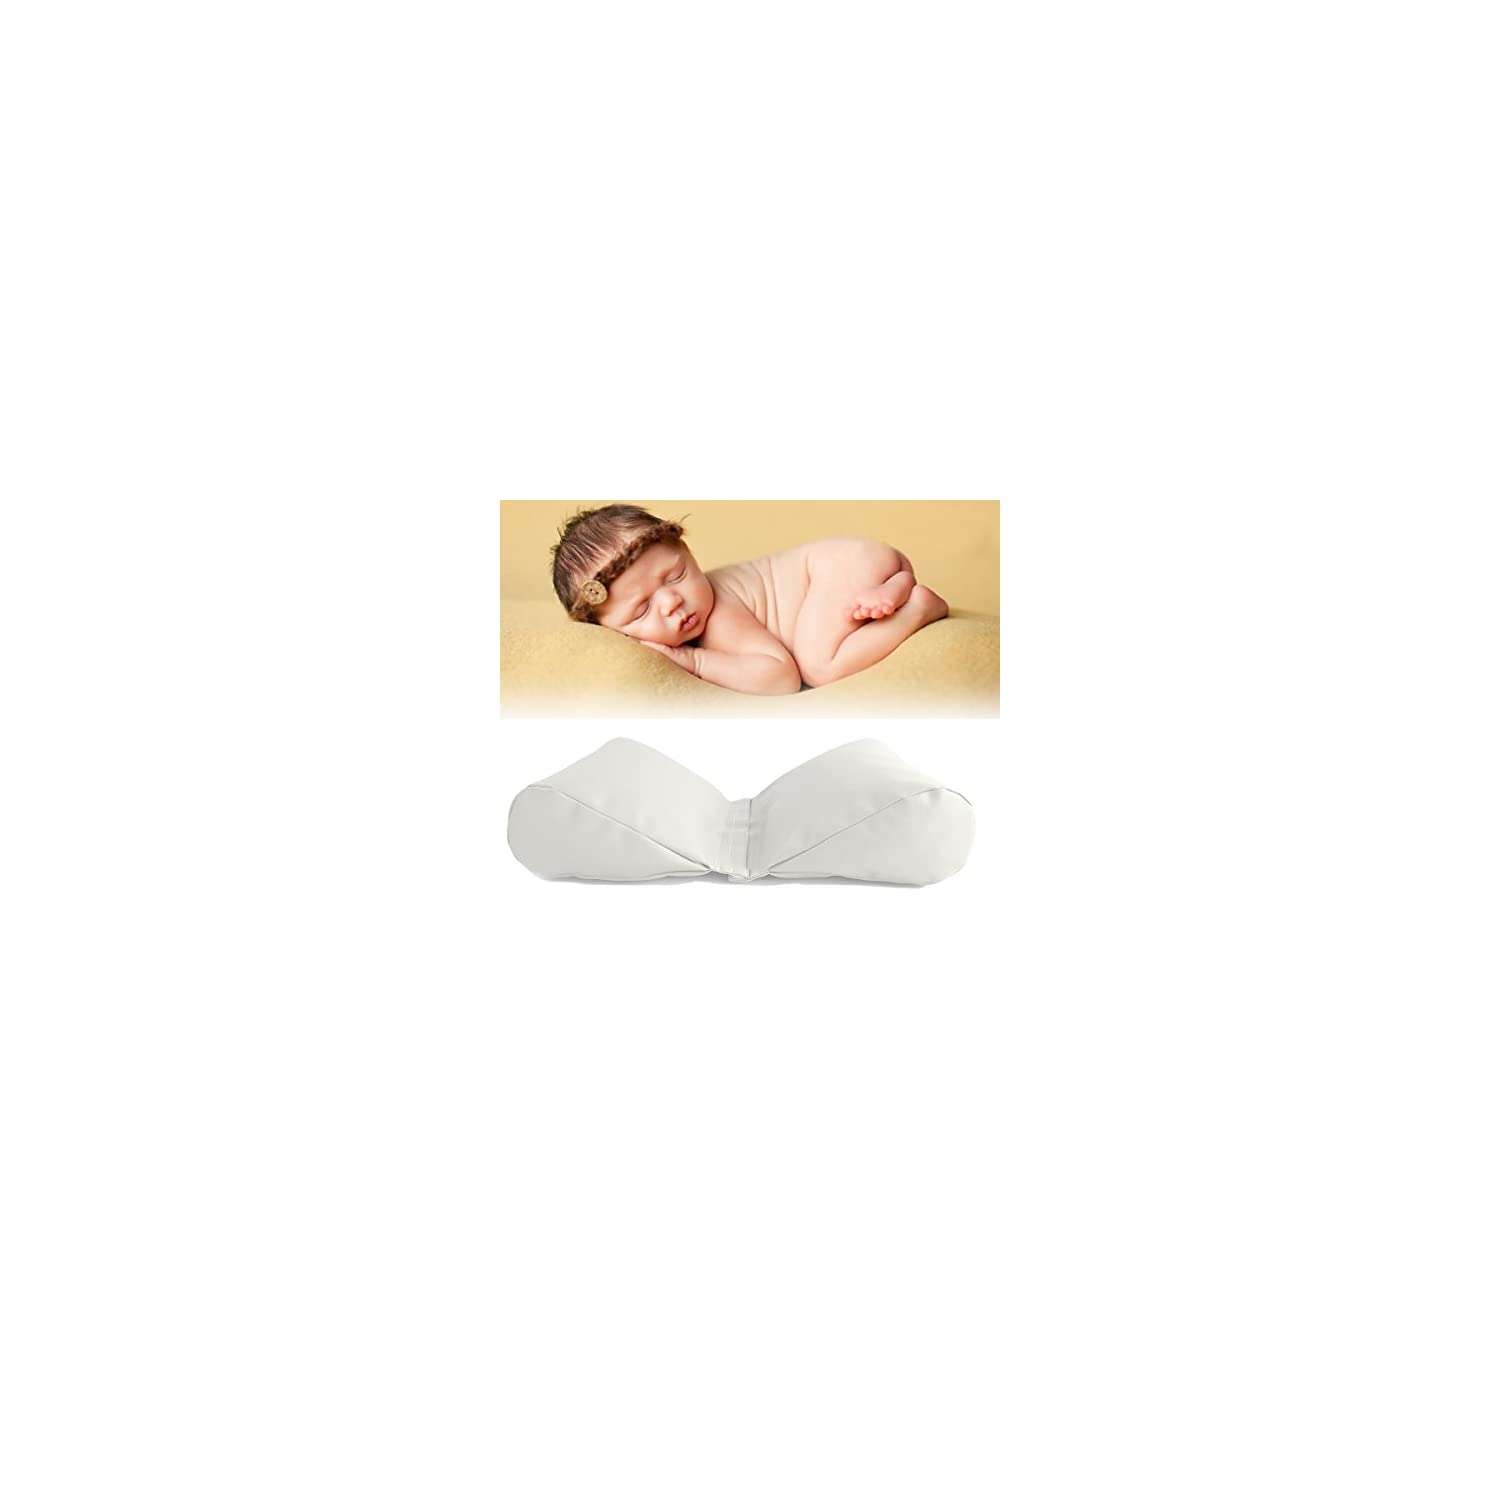 Sunmig Newborn Baby Photography Butterfly Posing Pillow Basket Filler Photo Prop (White)